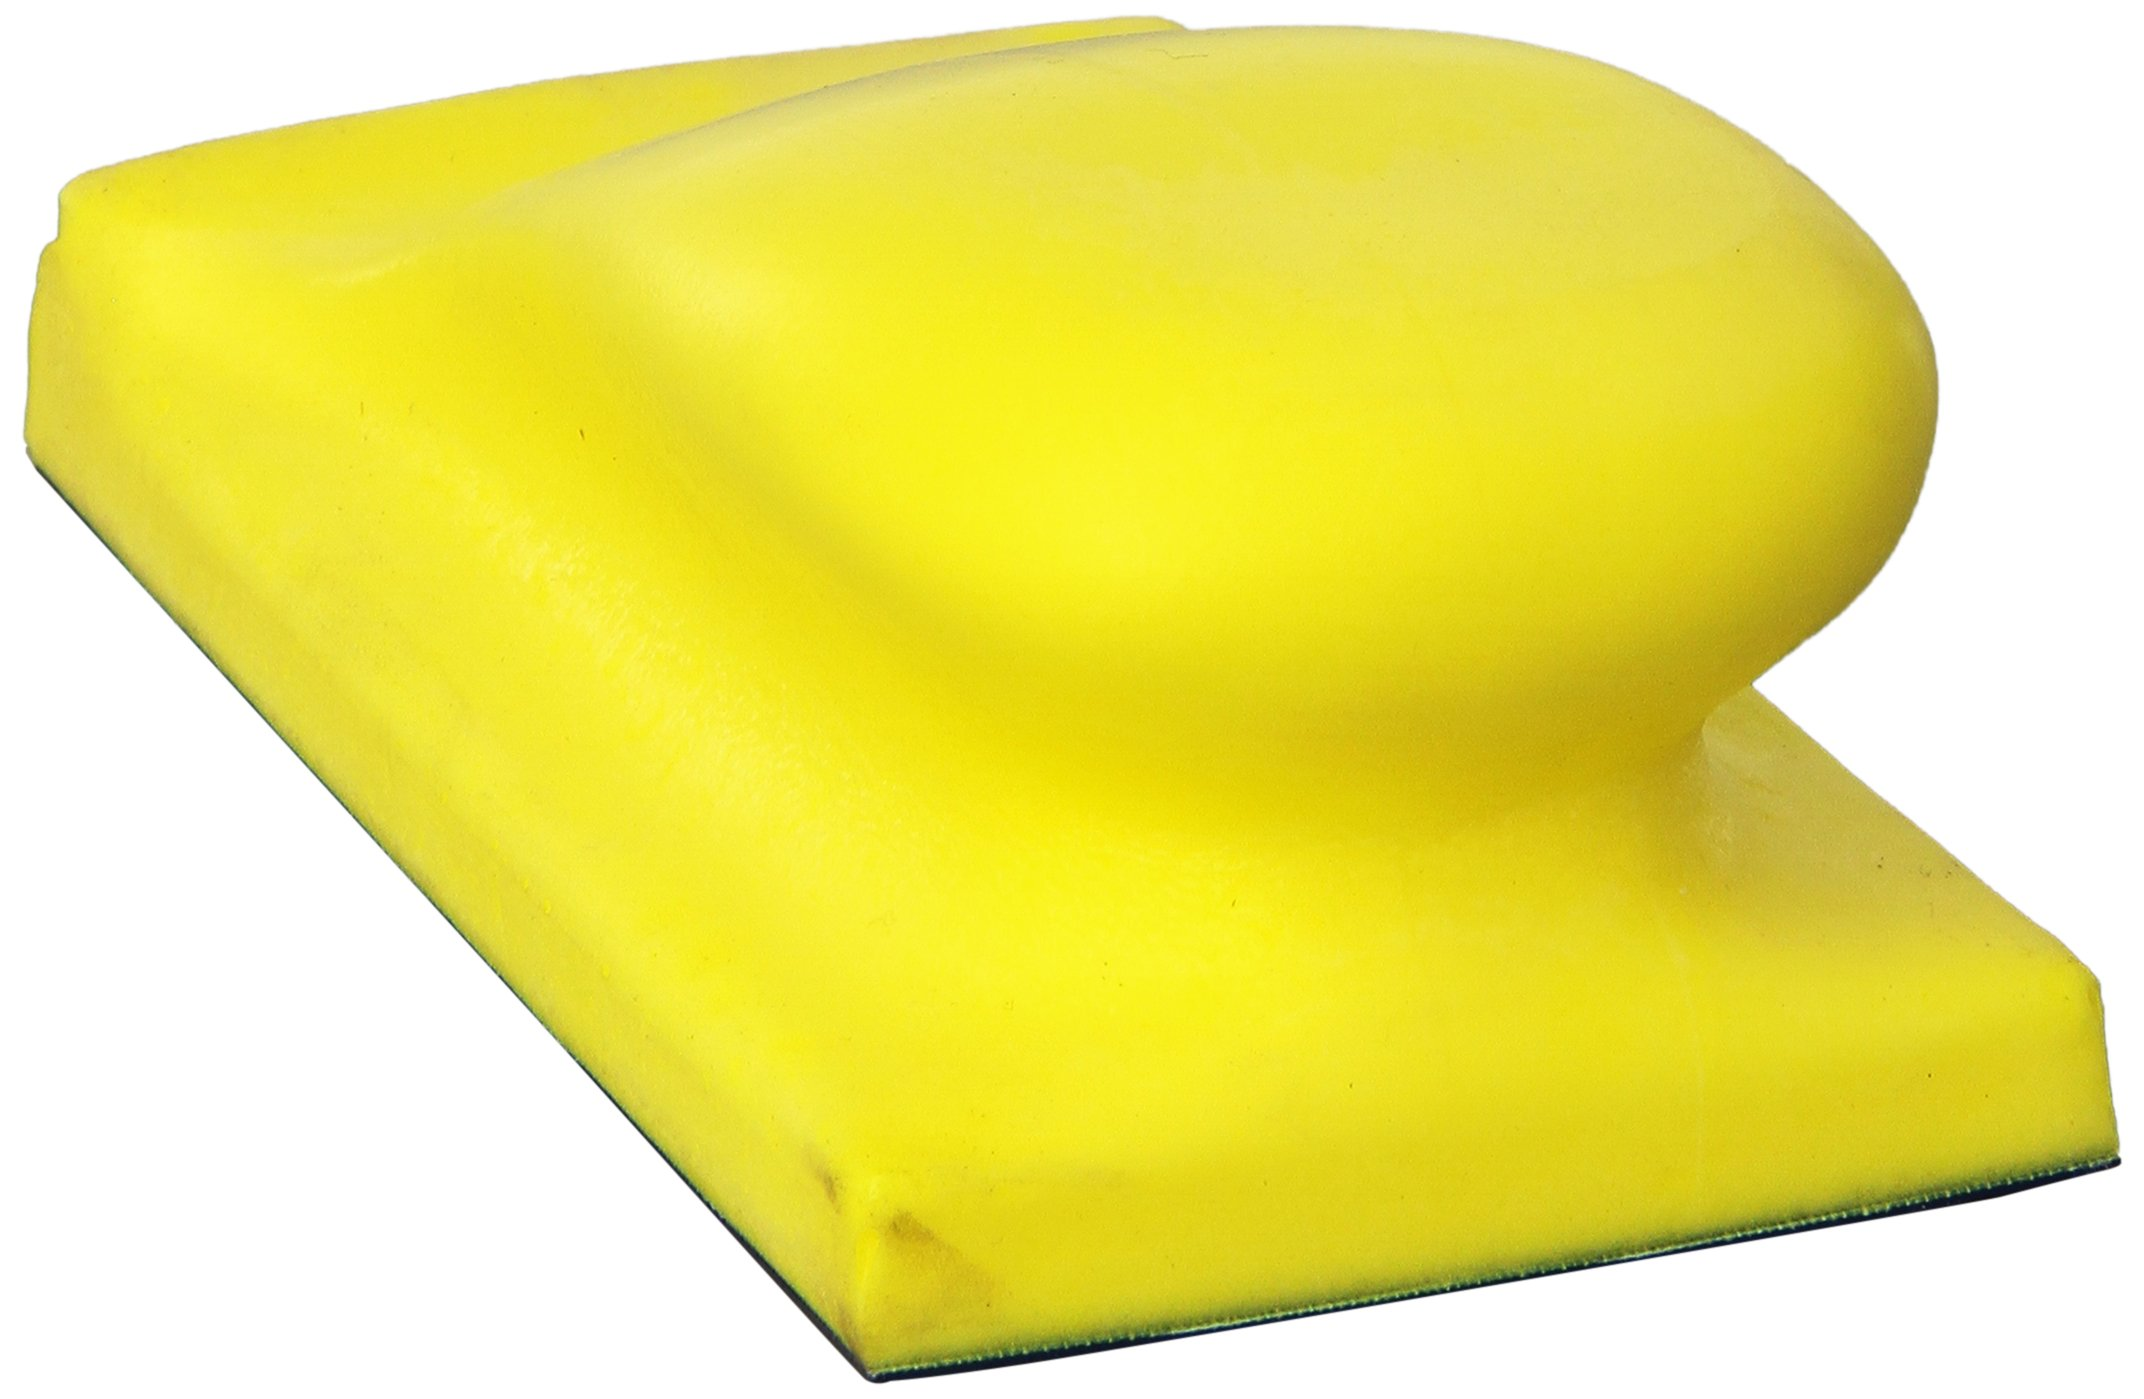 3M 05442 Stikit 2-3/4 x 5'' Soft Hand Block by 3M (Image #2)